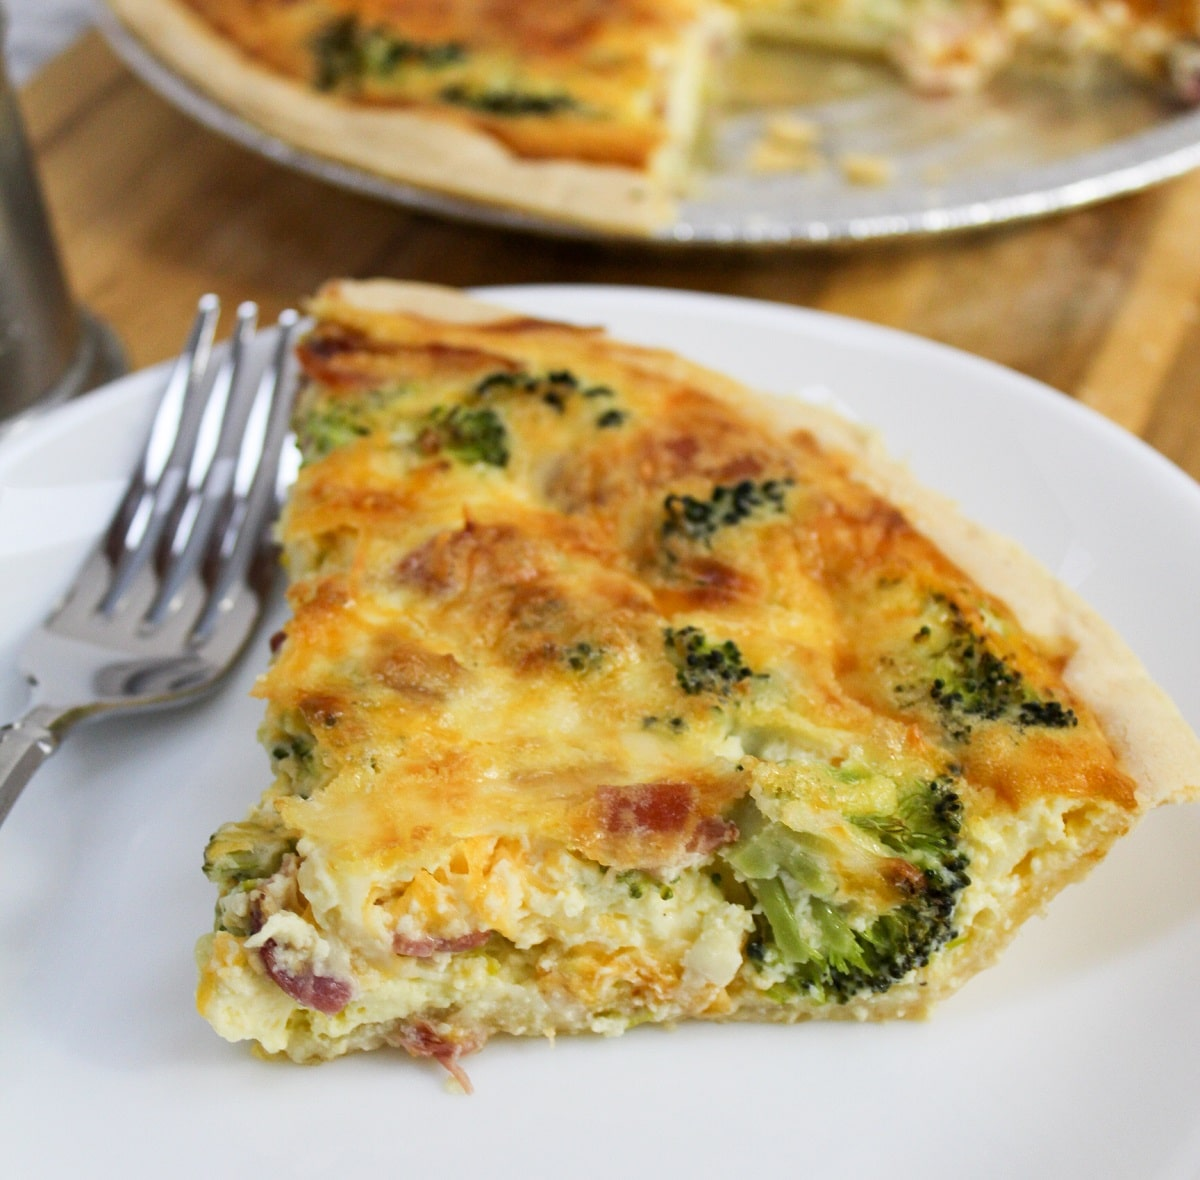 bacon broccoli quiche plated with fork